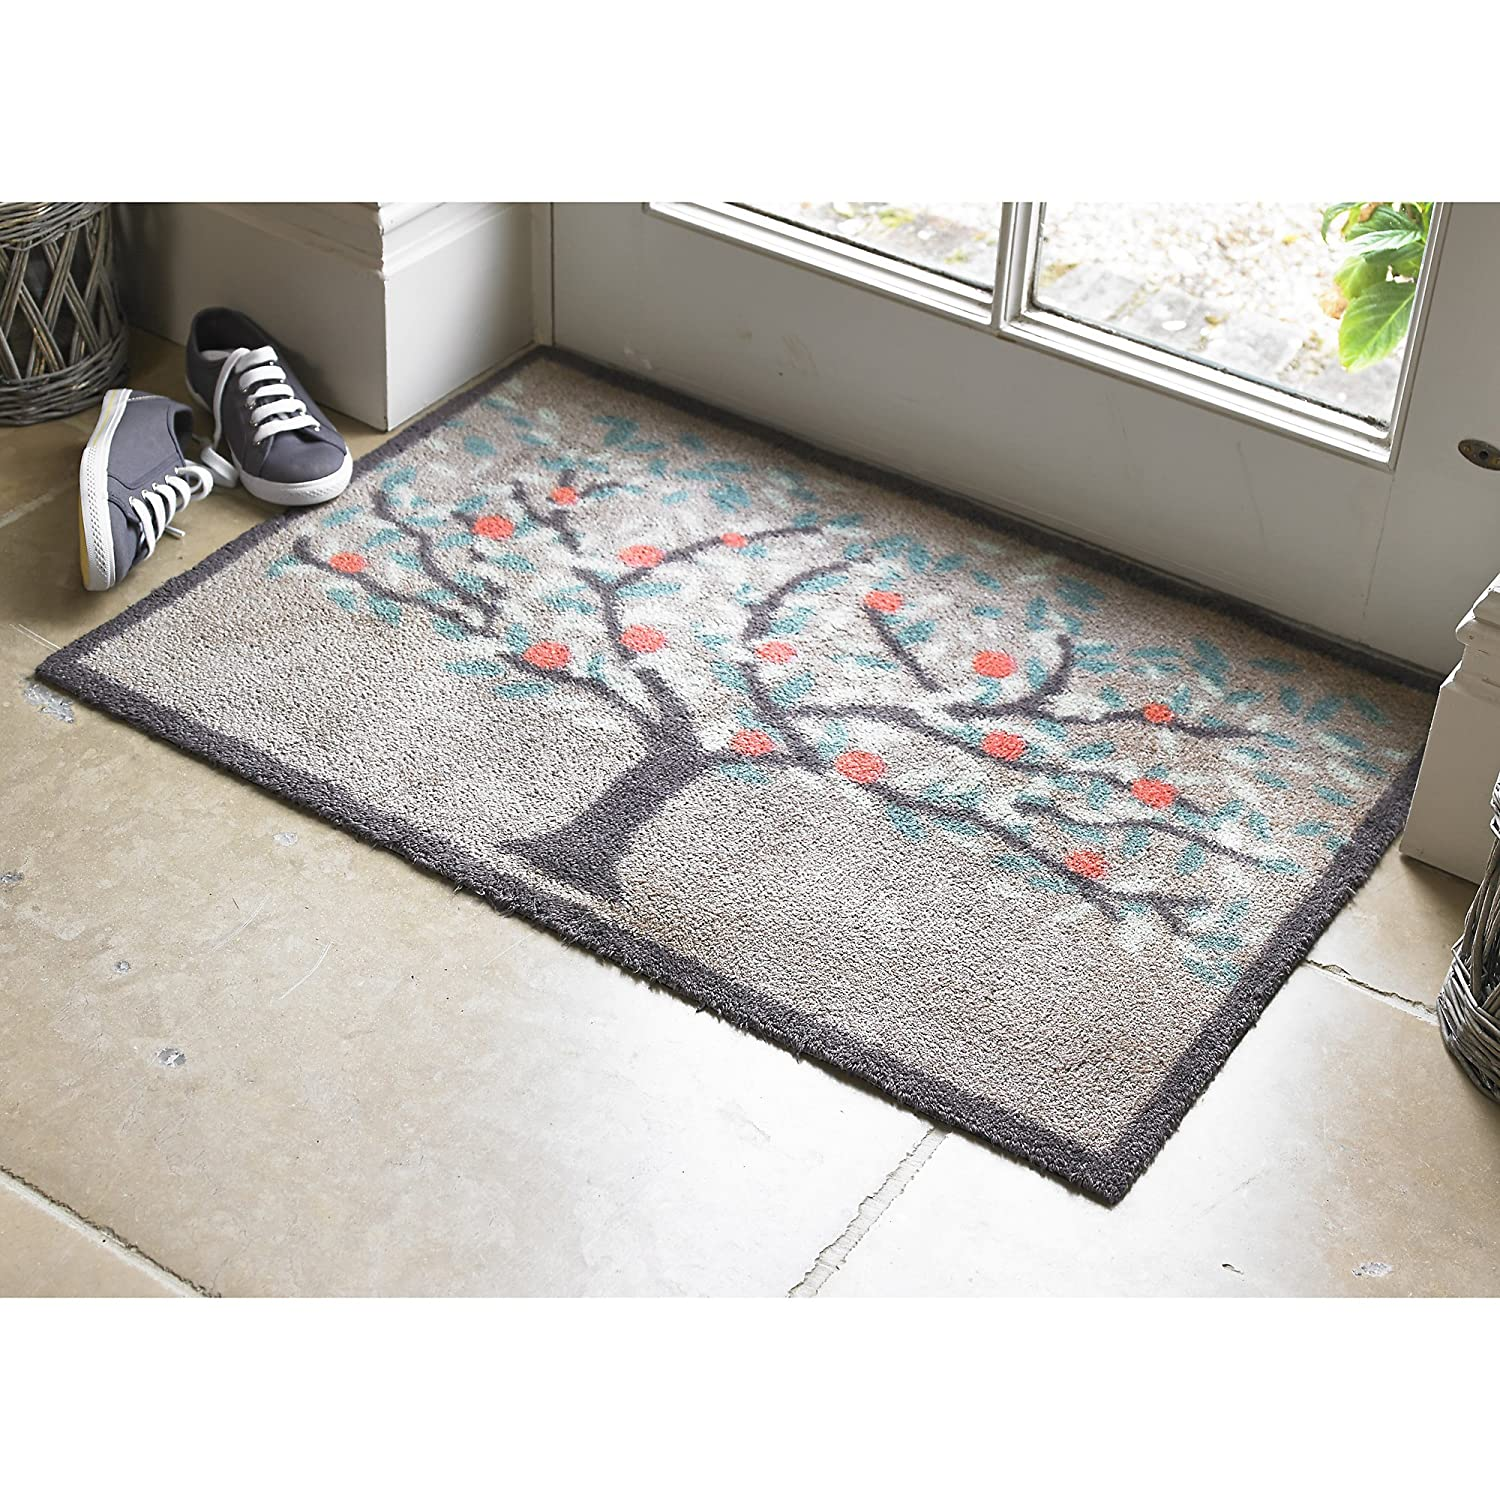 Dee Hardwicke Turtle Mat Orchard Indoor Floor Doormat